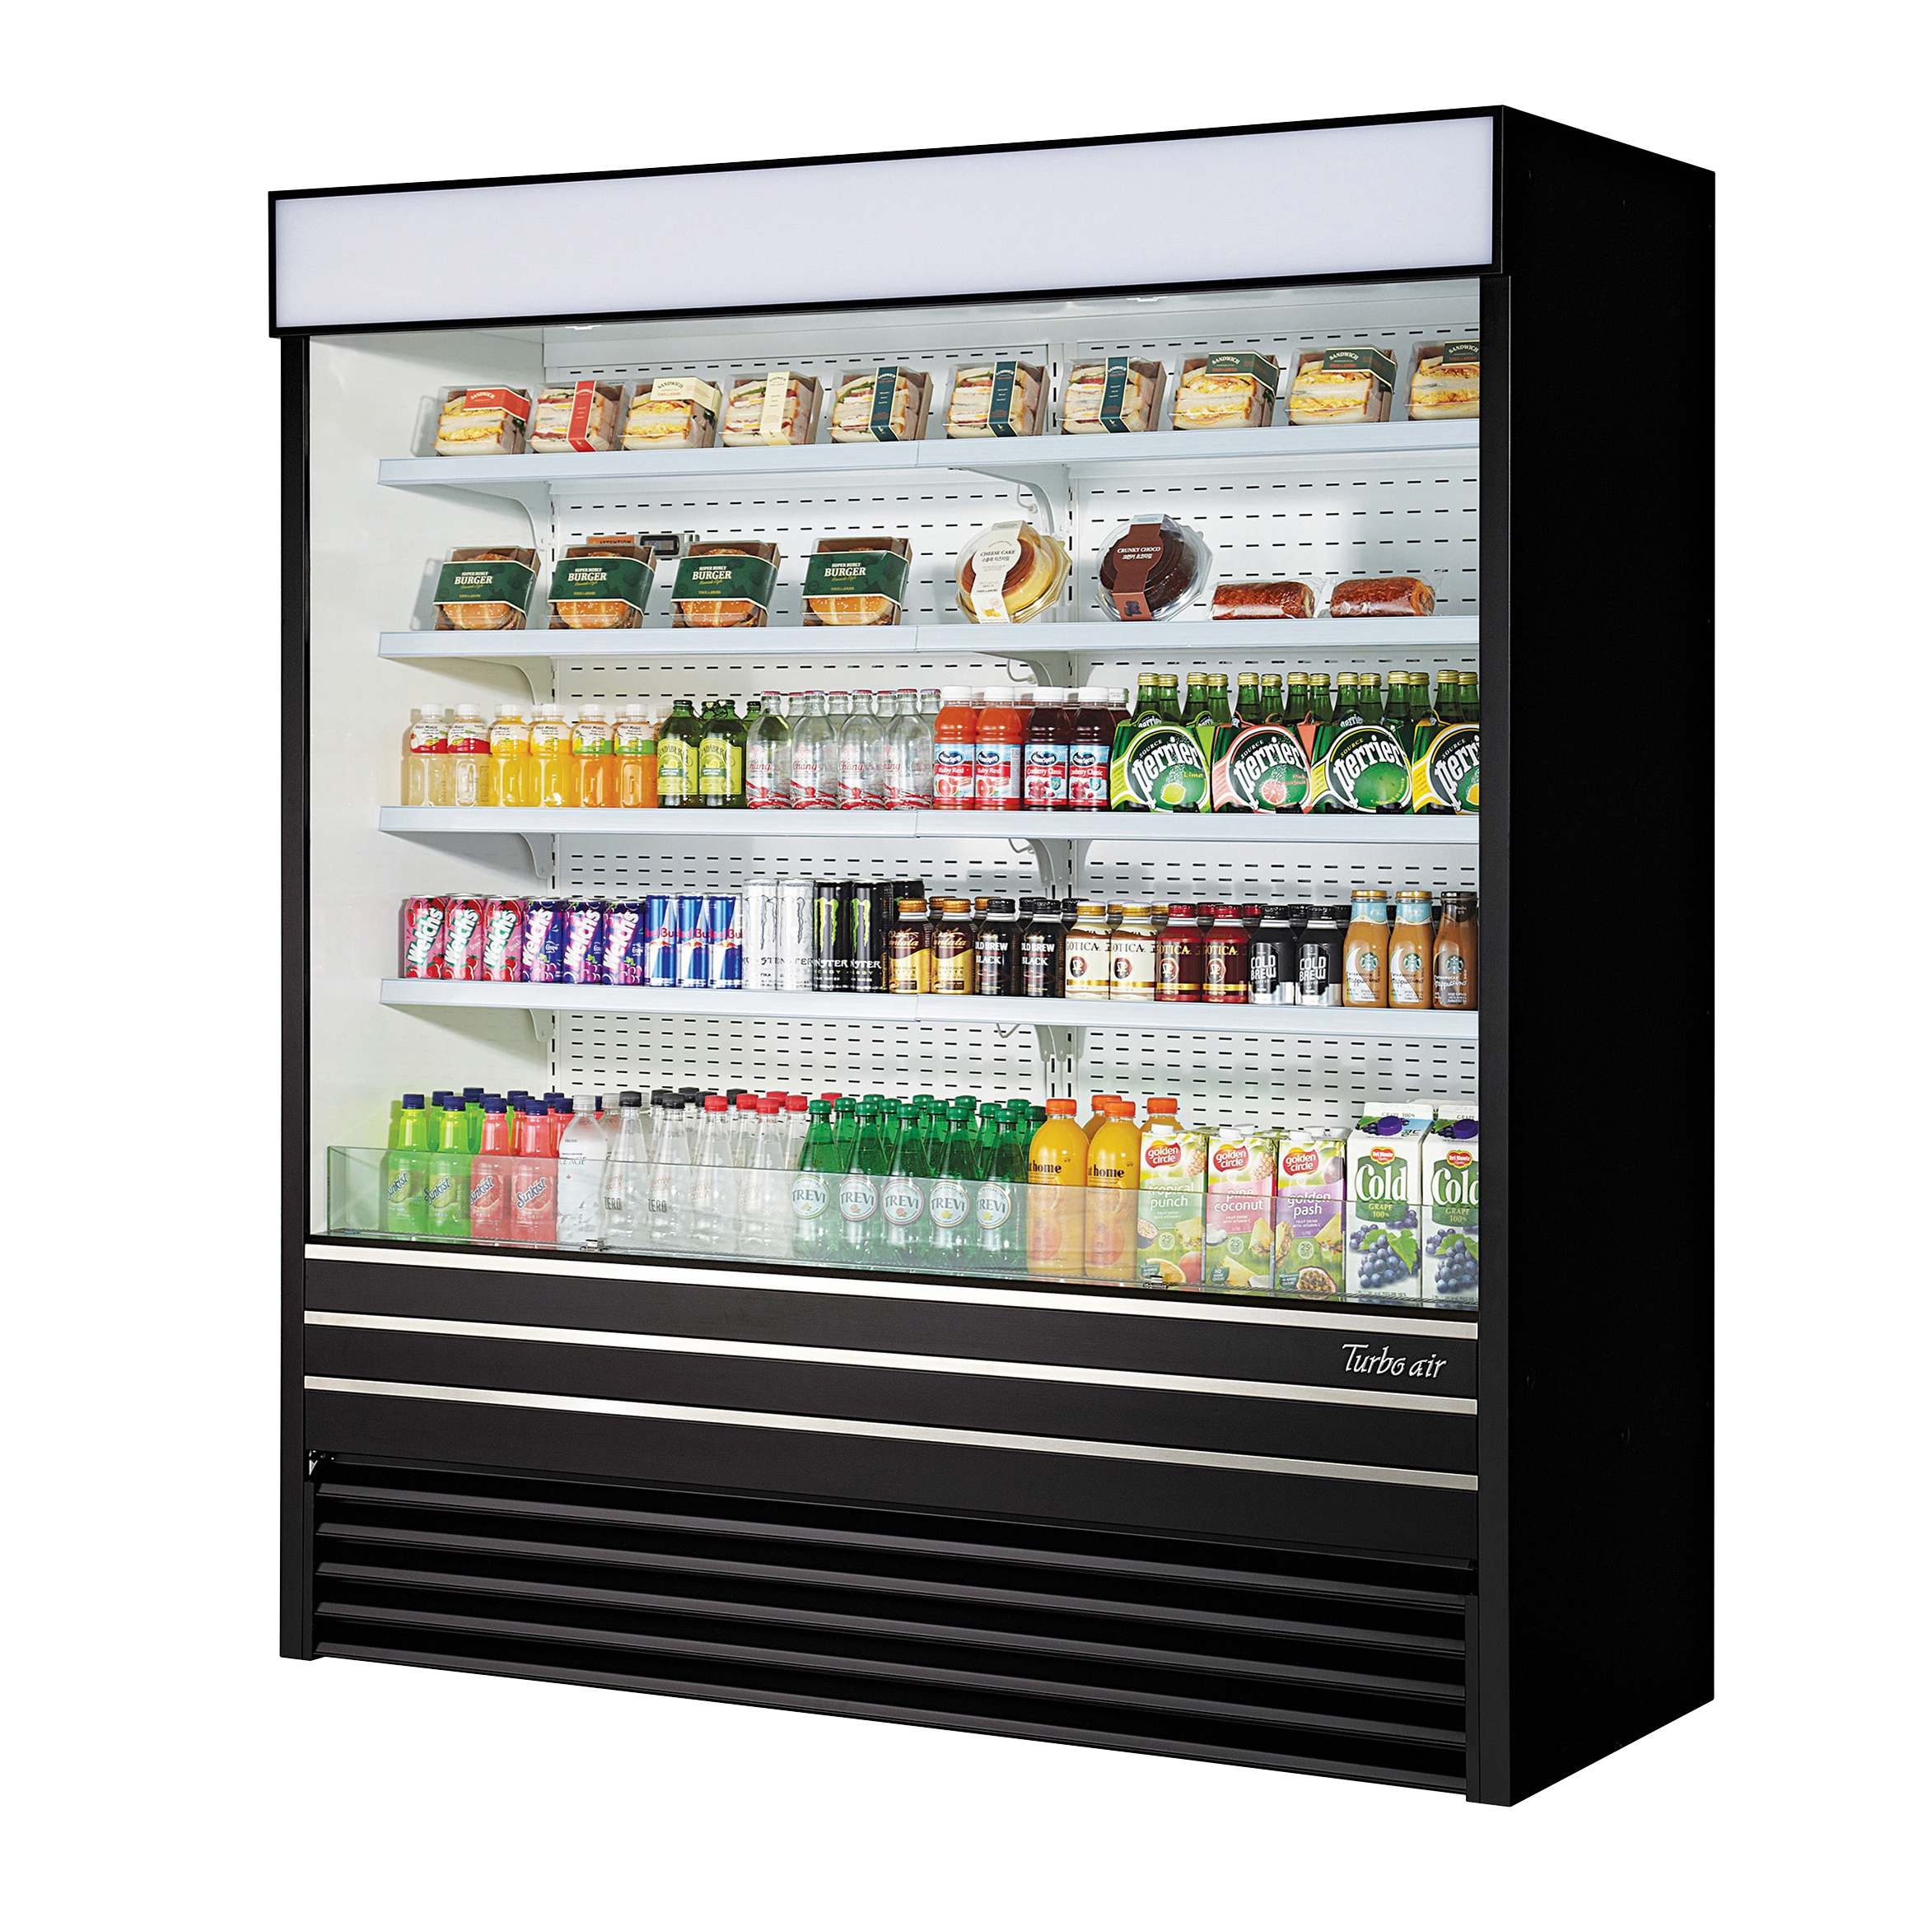 Turbo Air TOM-72EB-N merchandiser, open refrigerated display